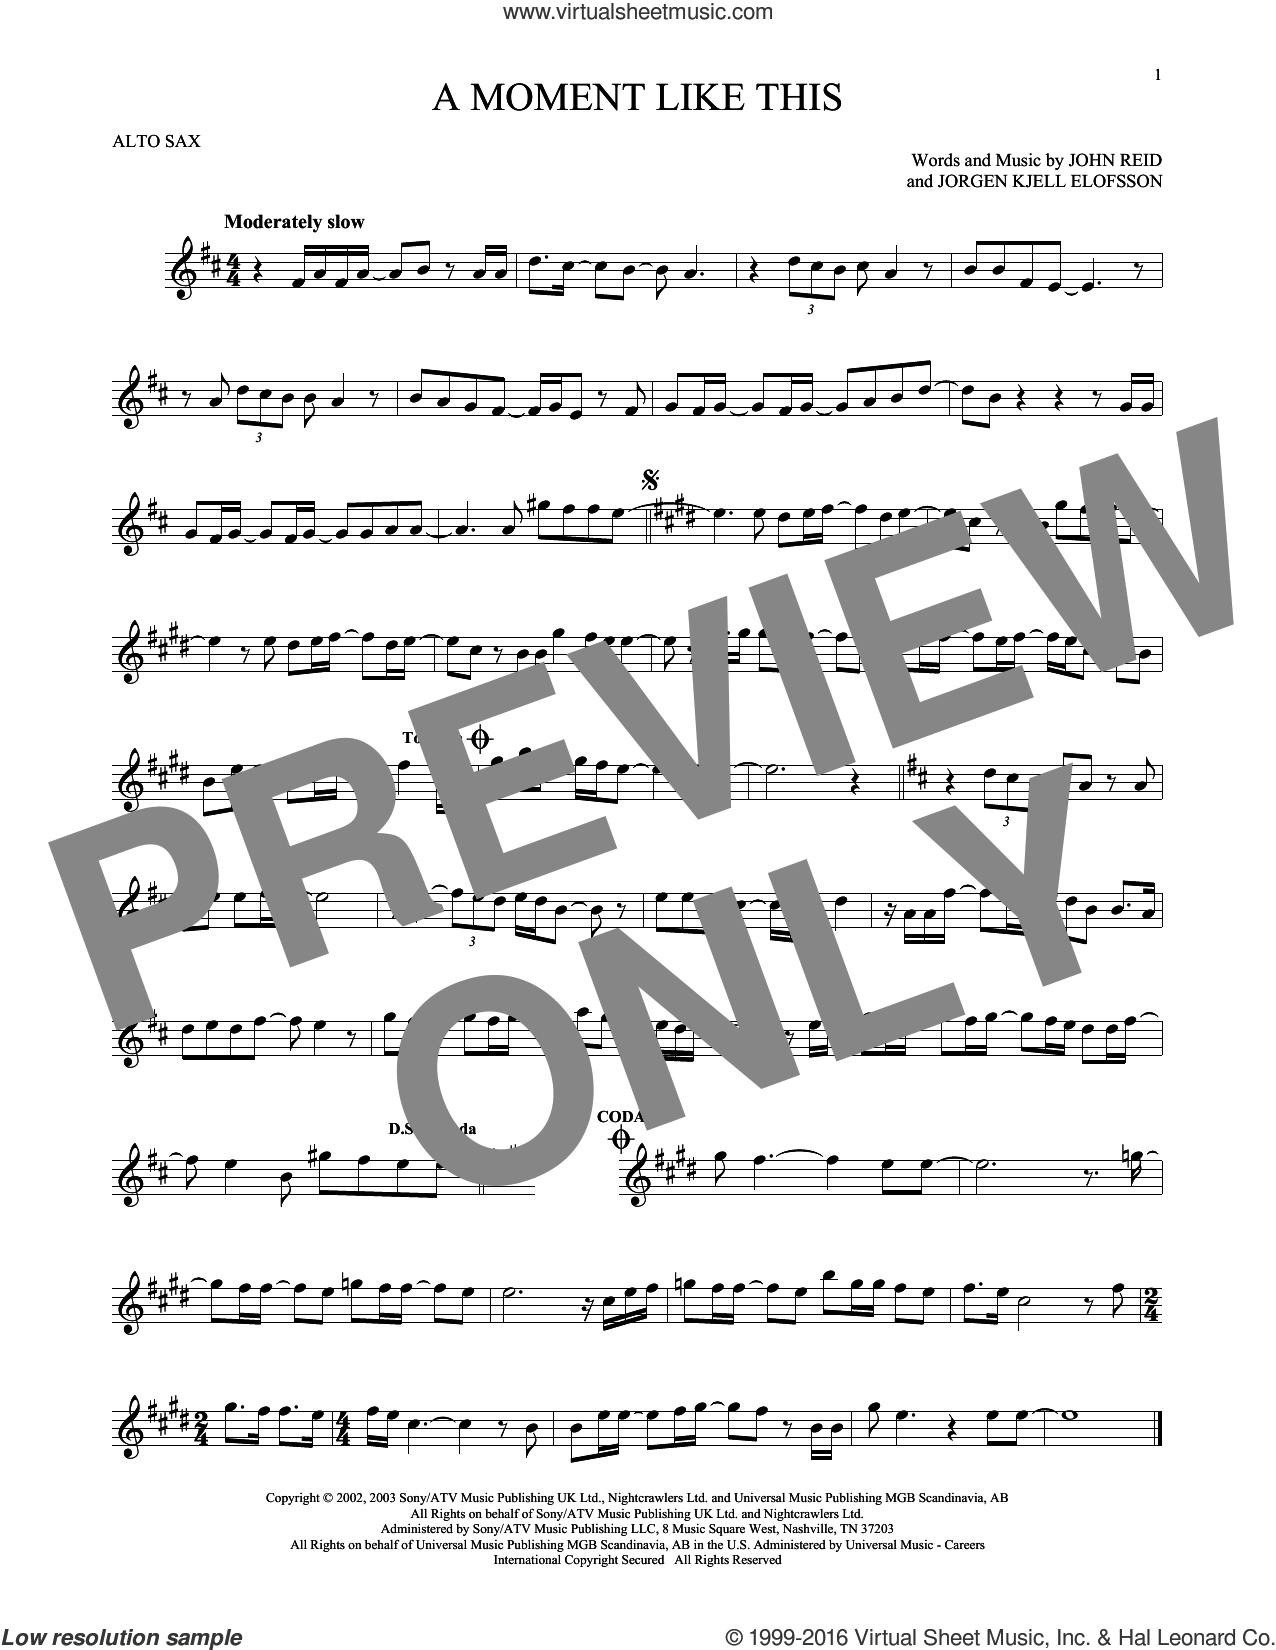 A Moment Like This sheet music for alto saxophone solo by Kelly Clarkson, John Reid and Jorgen Elofsson, intermediate